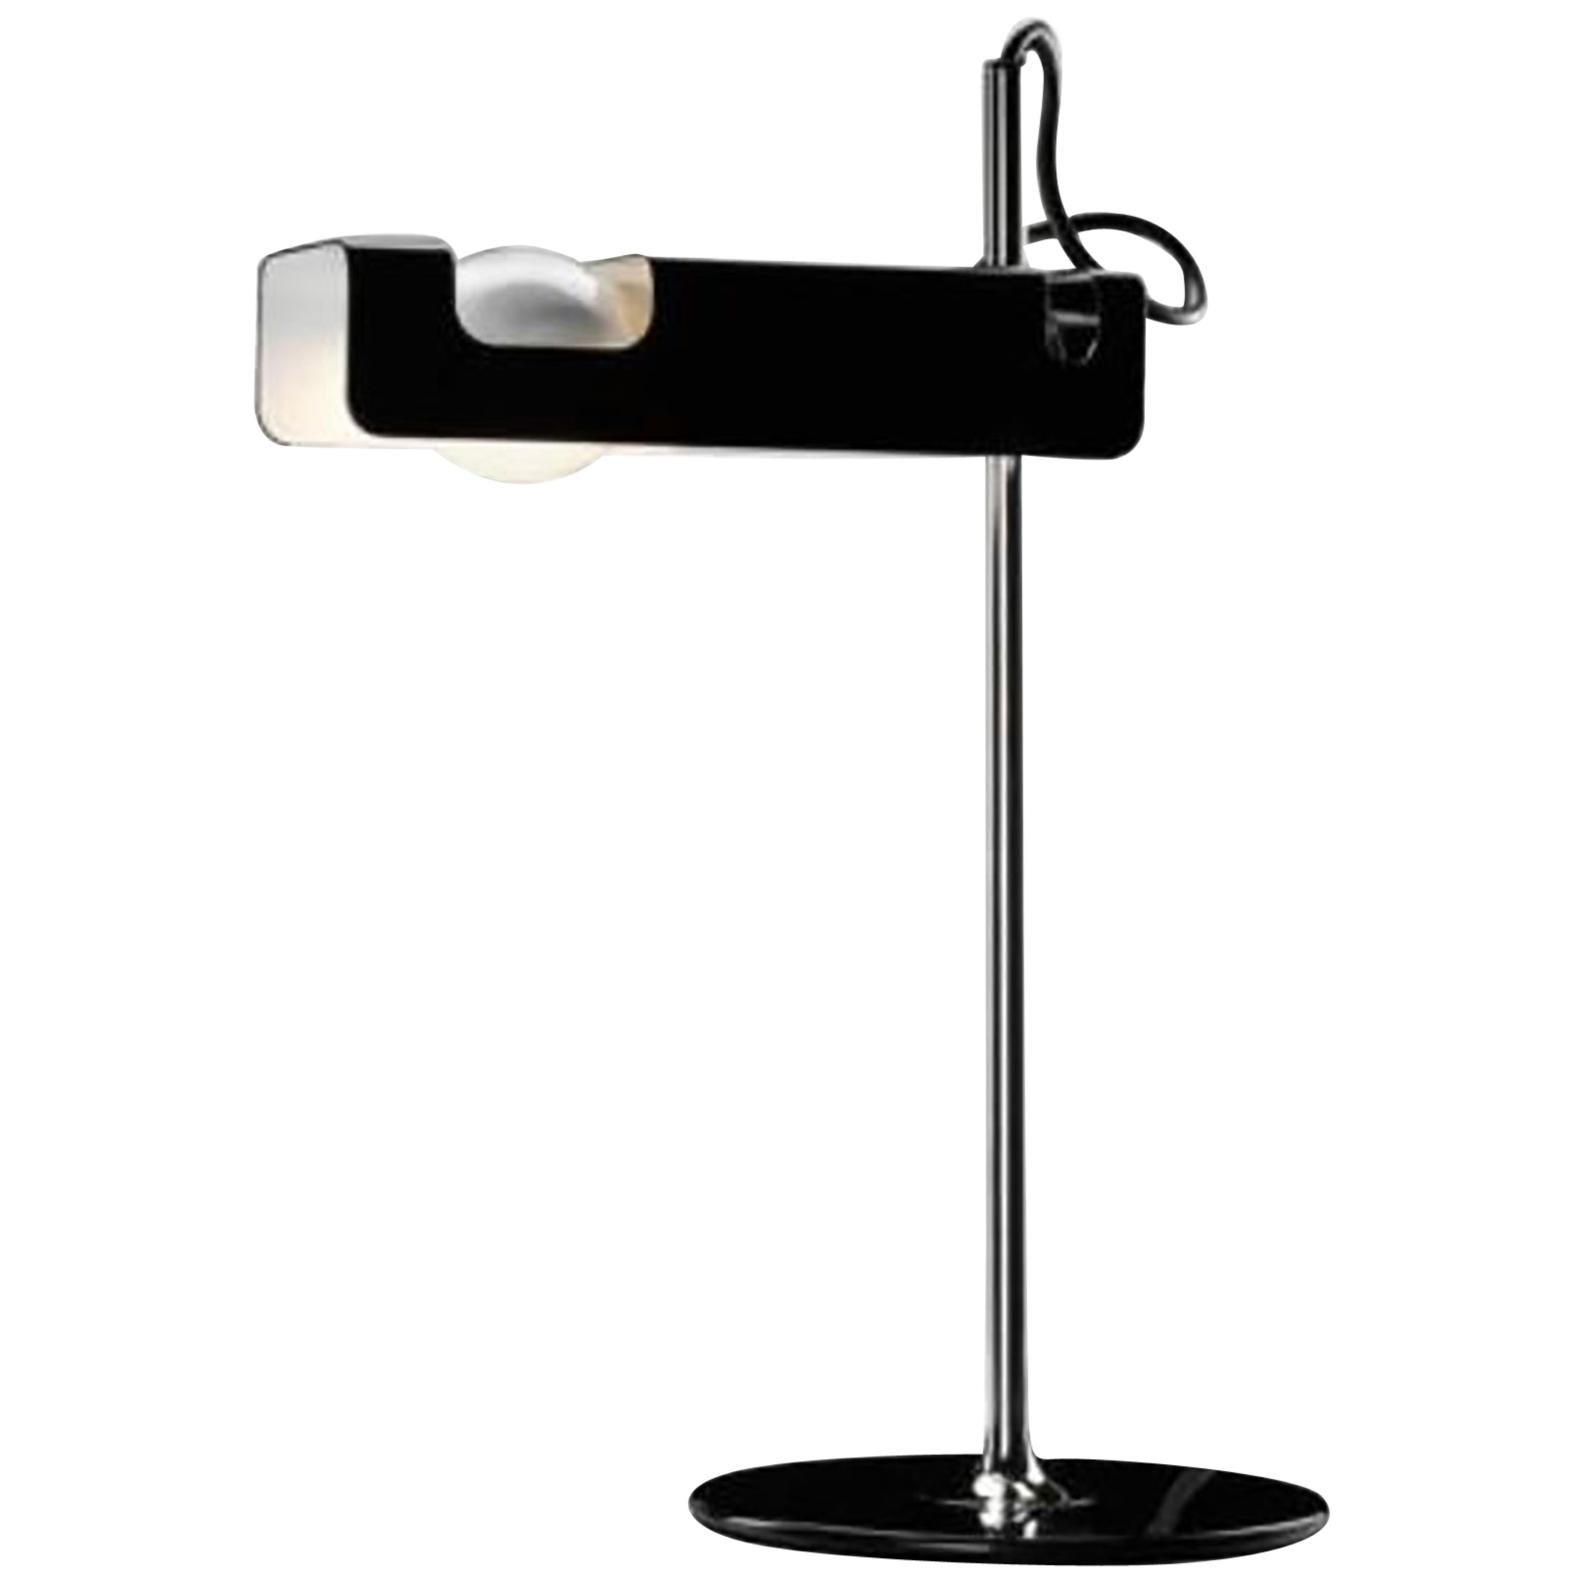 Spider Table Lamp by Joe Colombo for Oluce